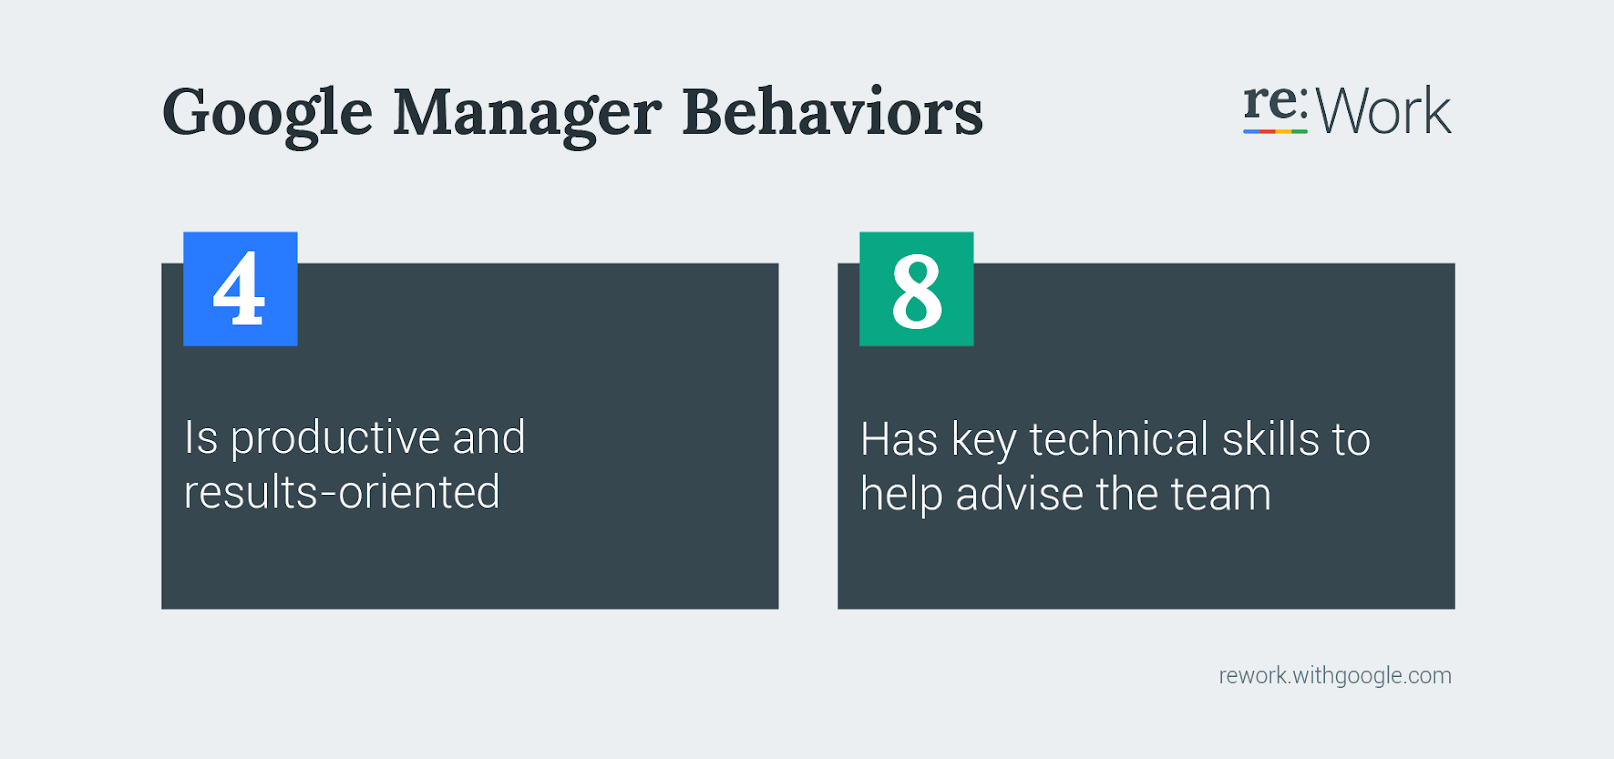 Google Manager Behaviors 4 Is productive and results-oriented. 8 Has key technical skills to help advise the team.